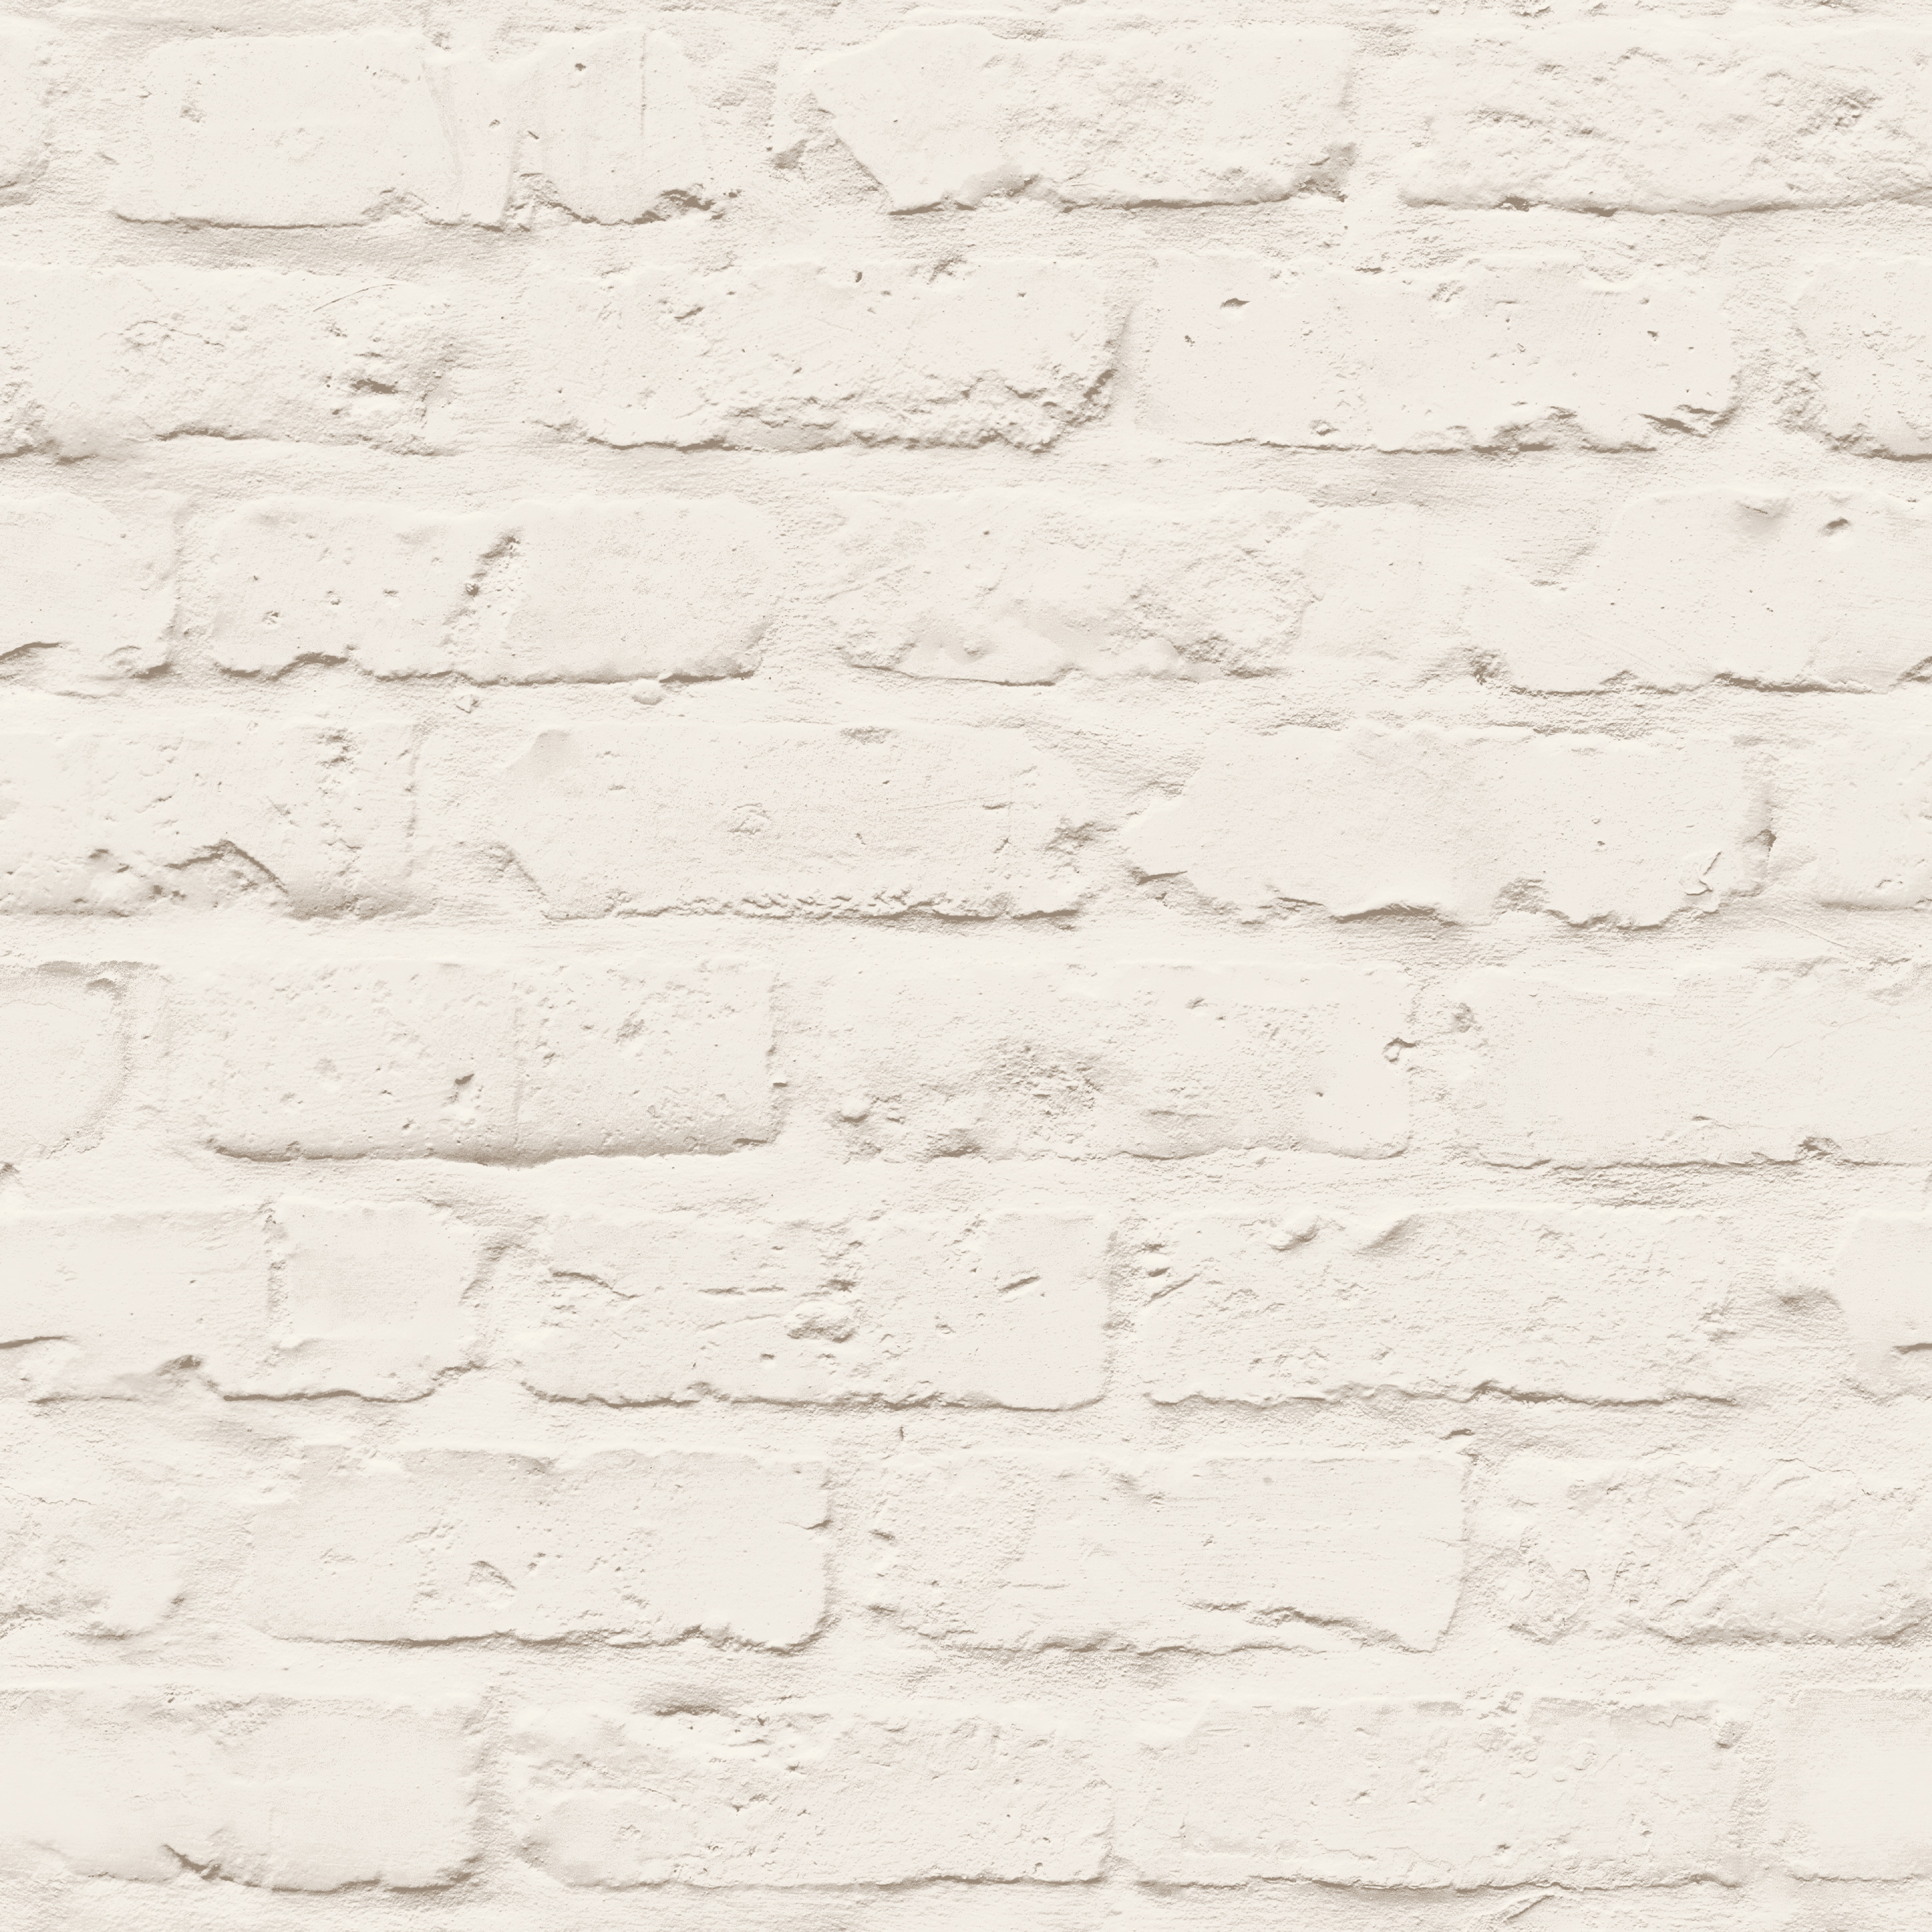 Tapetti Natural Forest White Brick NF3501, 0,53x10,05m, beige